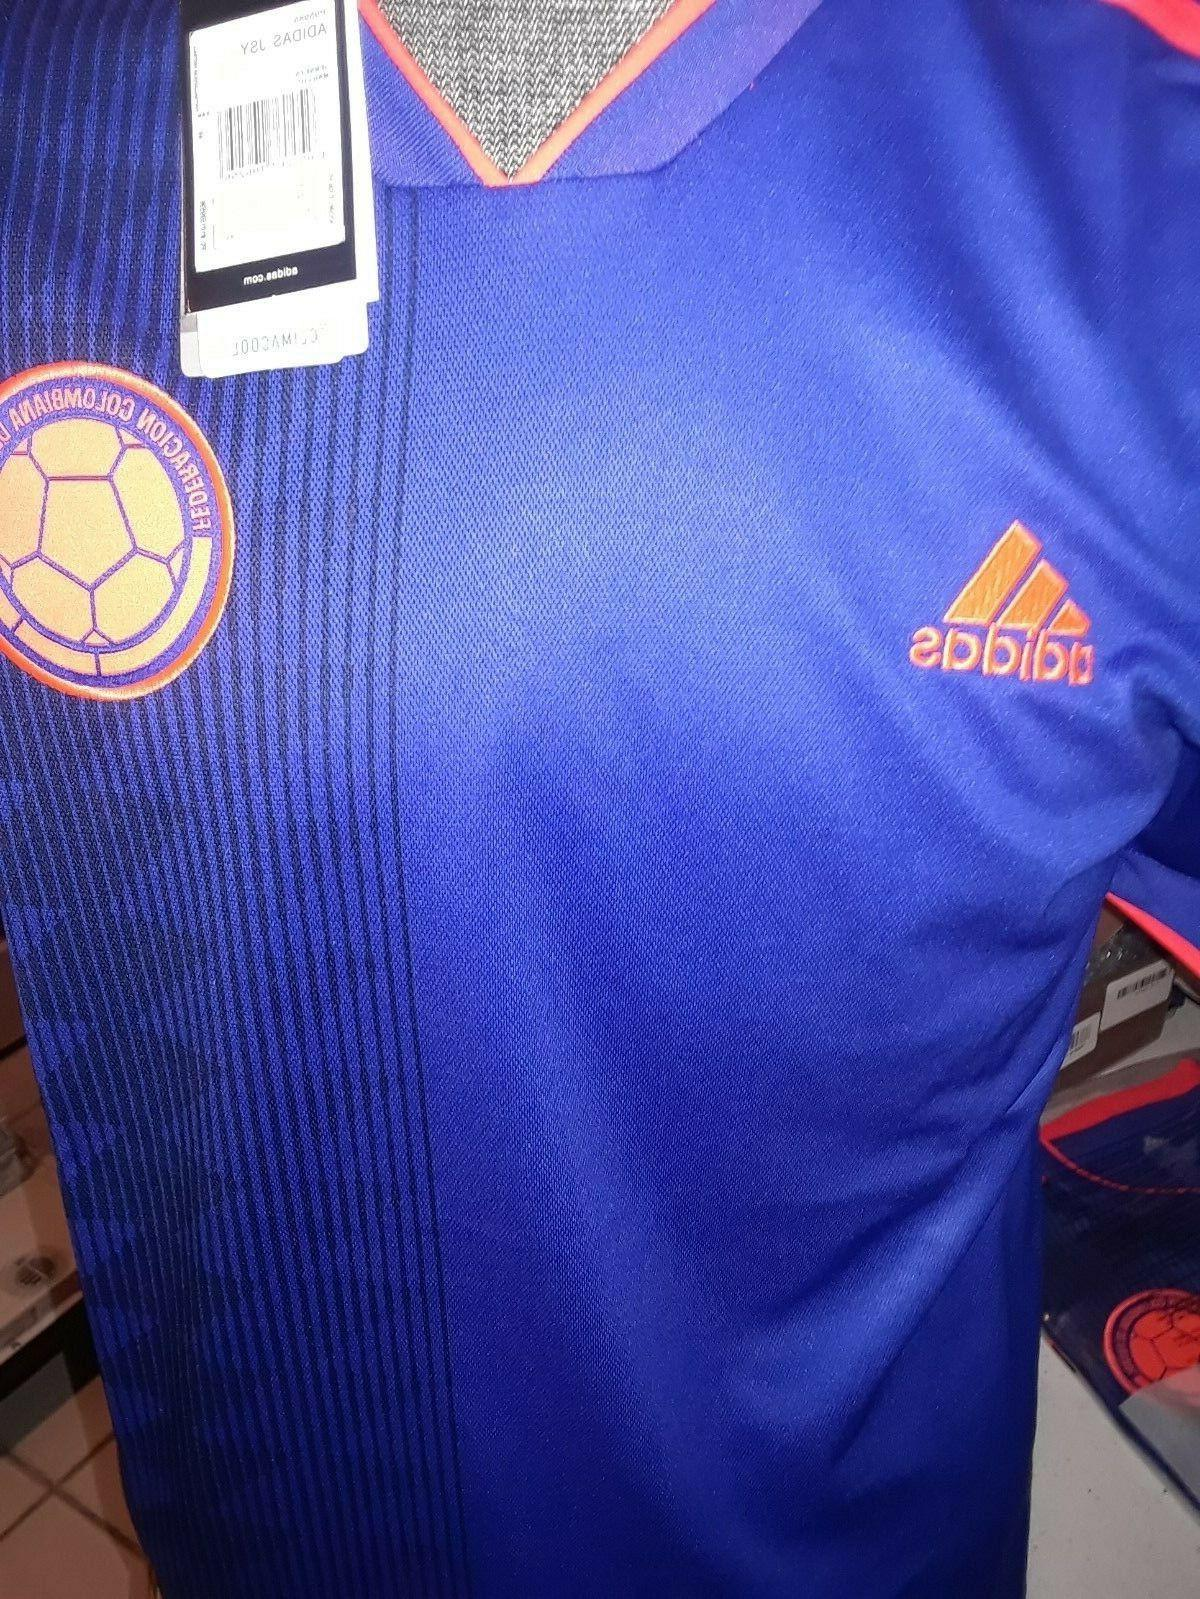 columbia jersey size large shirt soccer football